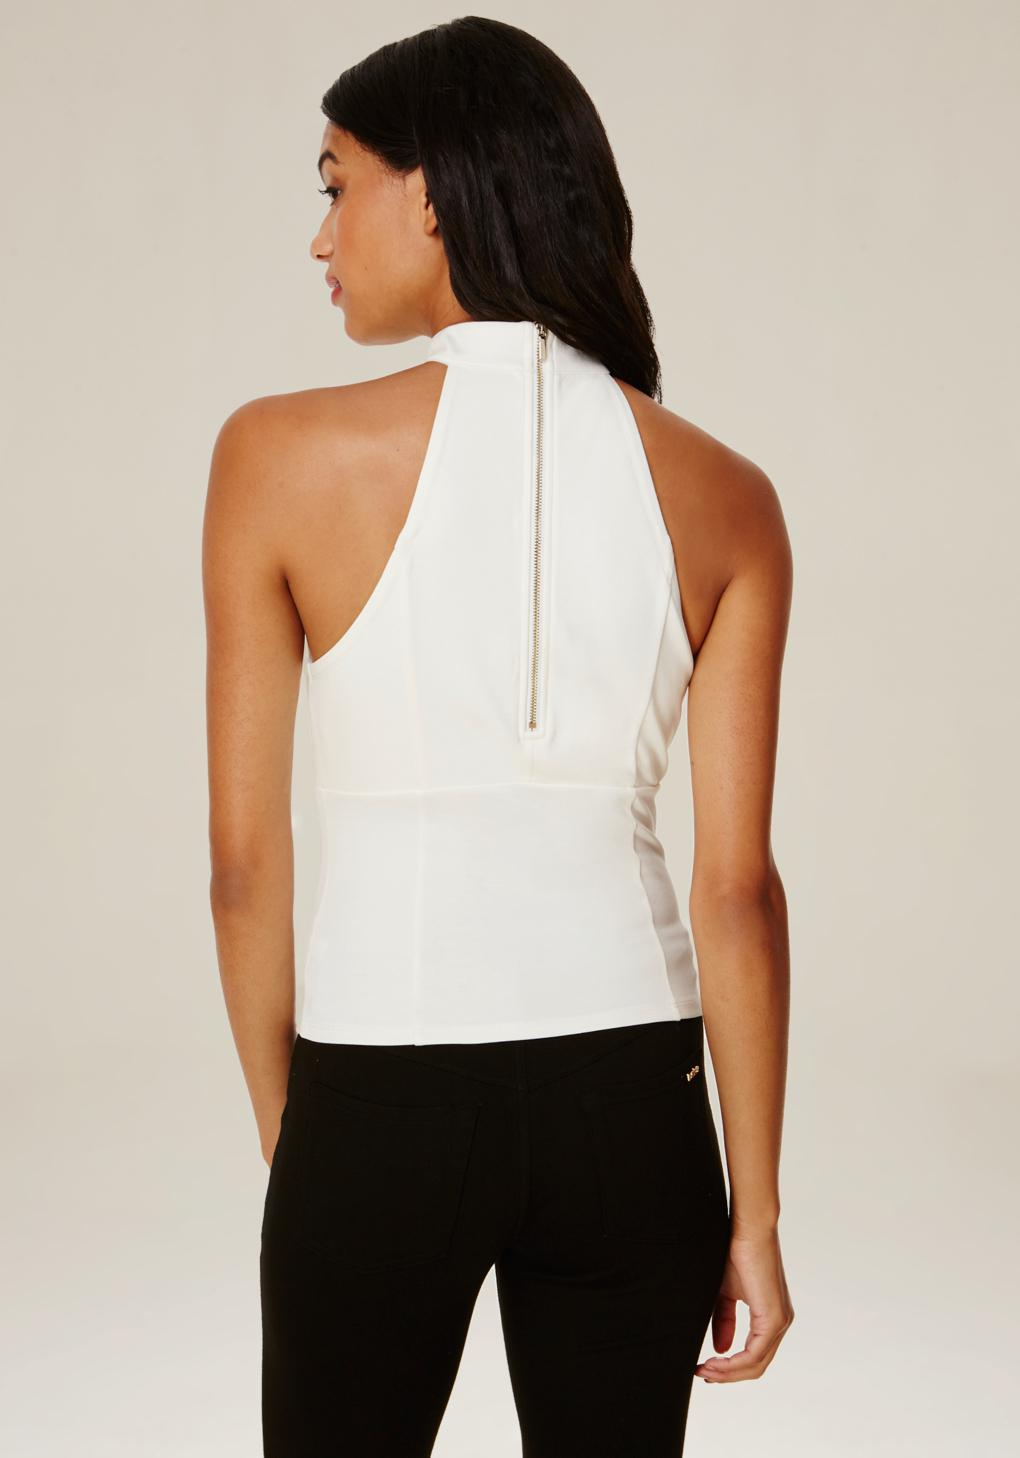 Bebe Synthetic Mock Neck Lace Up Top in White